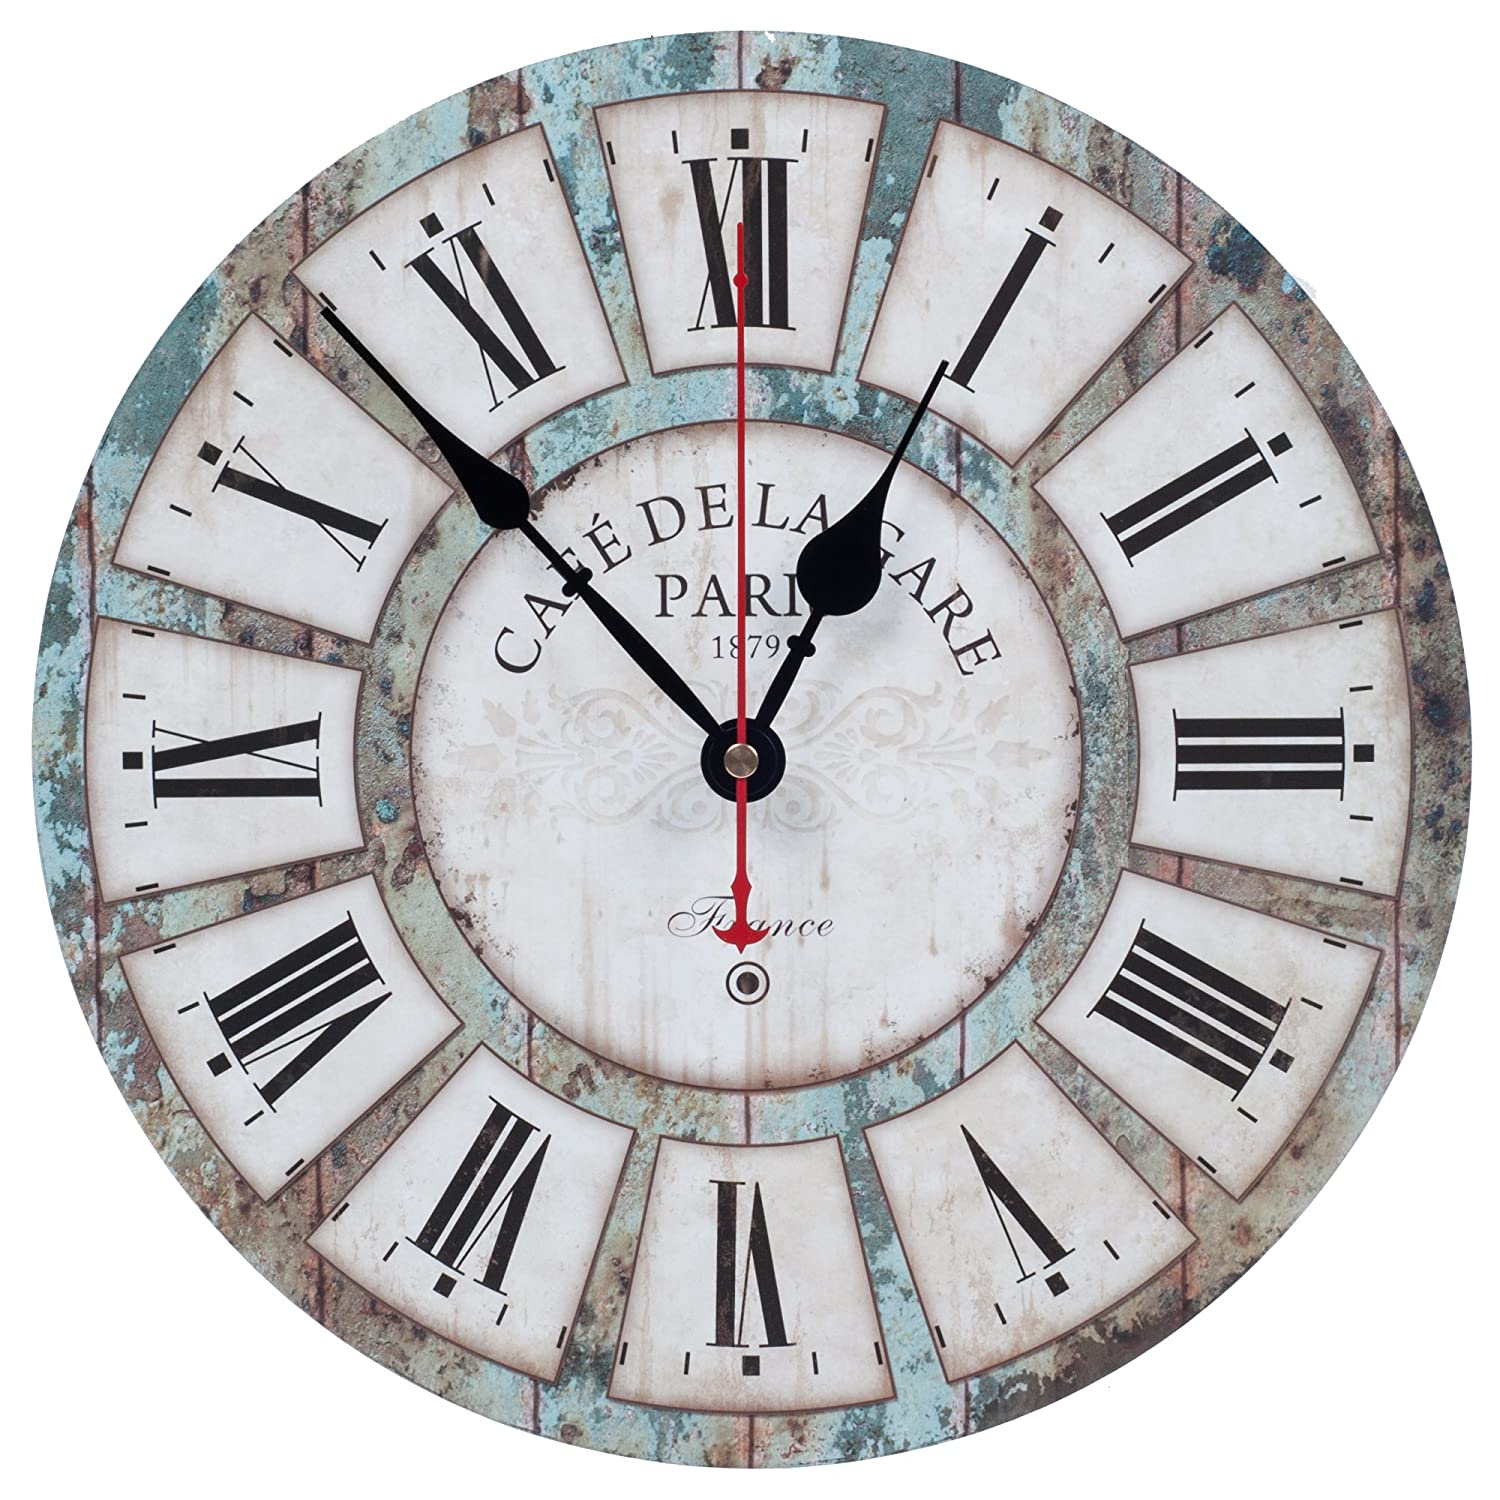 Decorative Silent Non Ticking Vintage Wall Clock